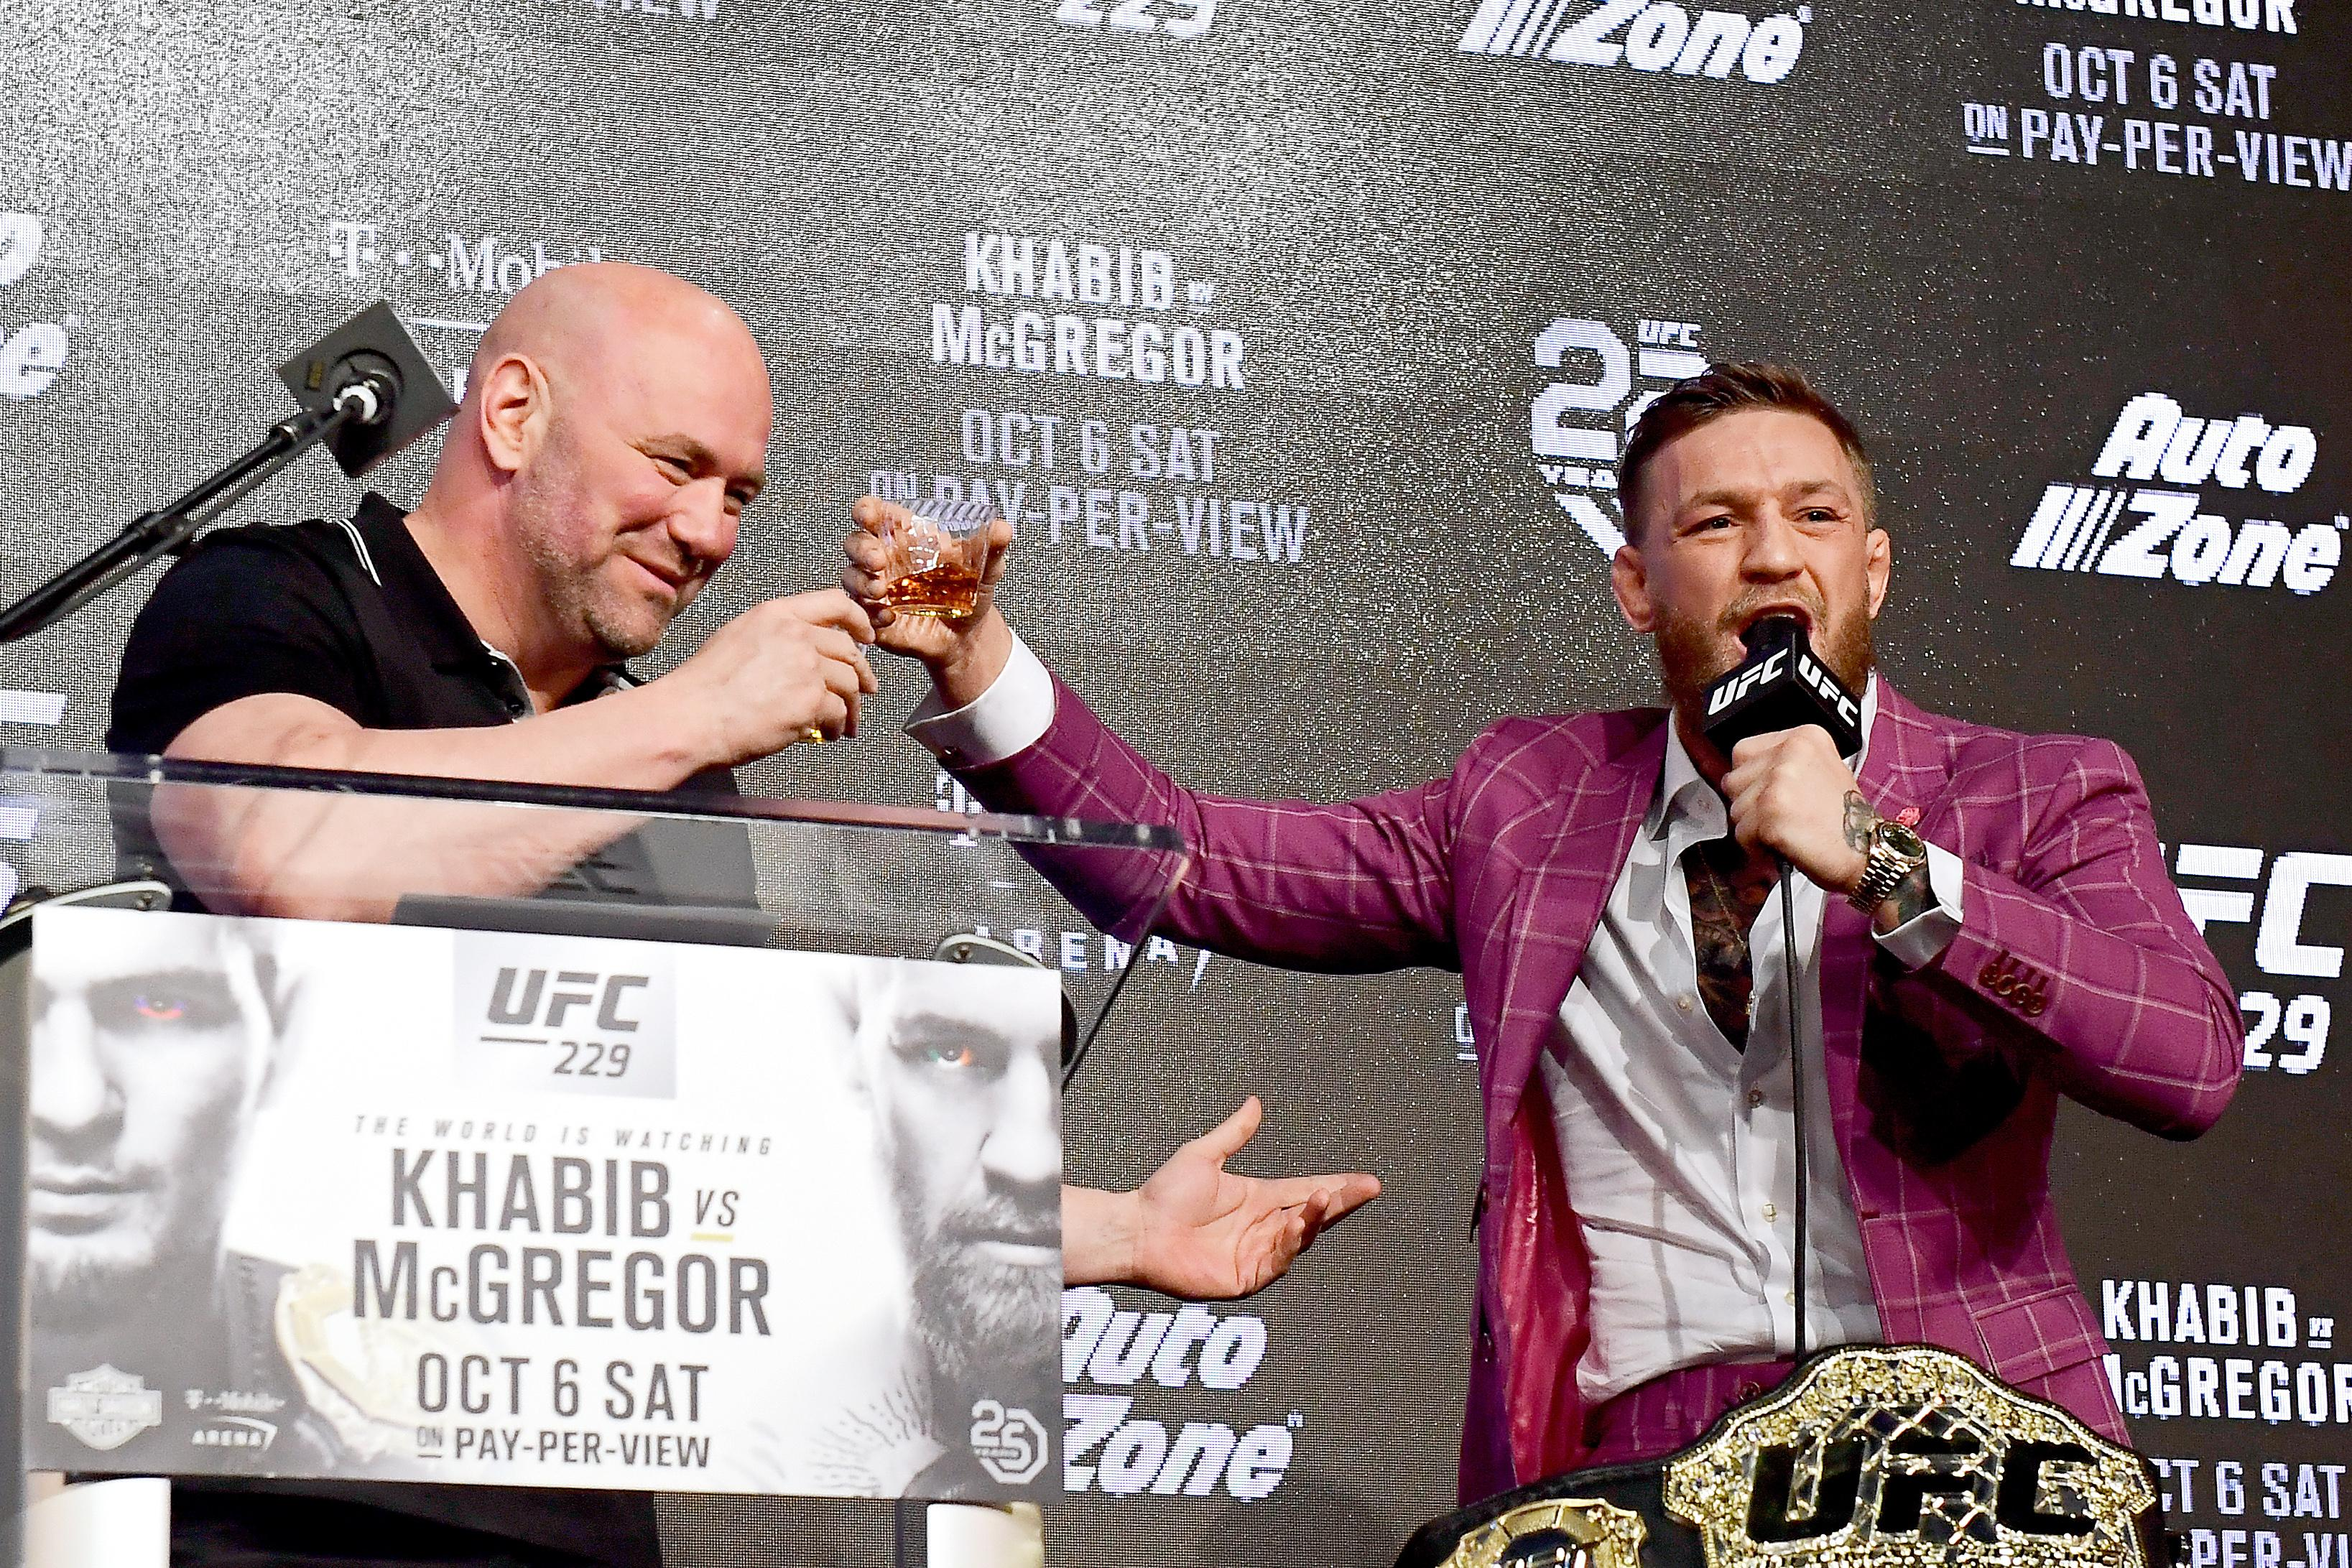 Dana White, who took a drink with the Irish star, revealed a deal had been signed with UFC